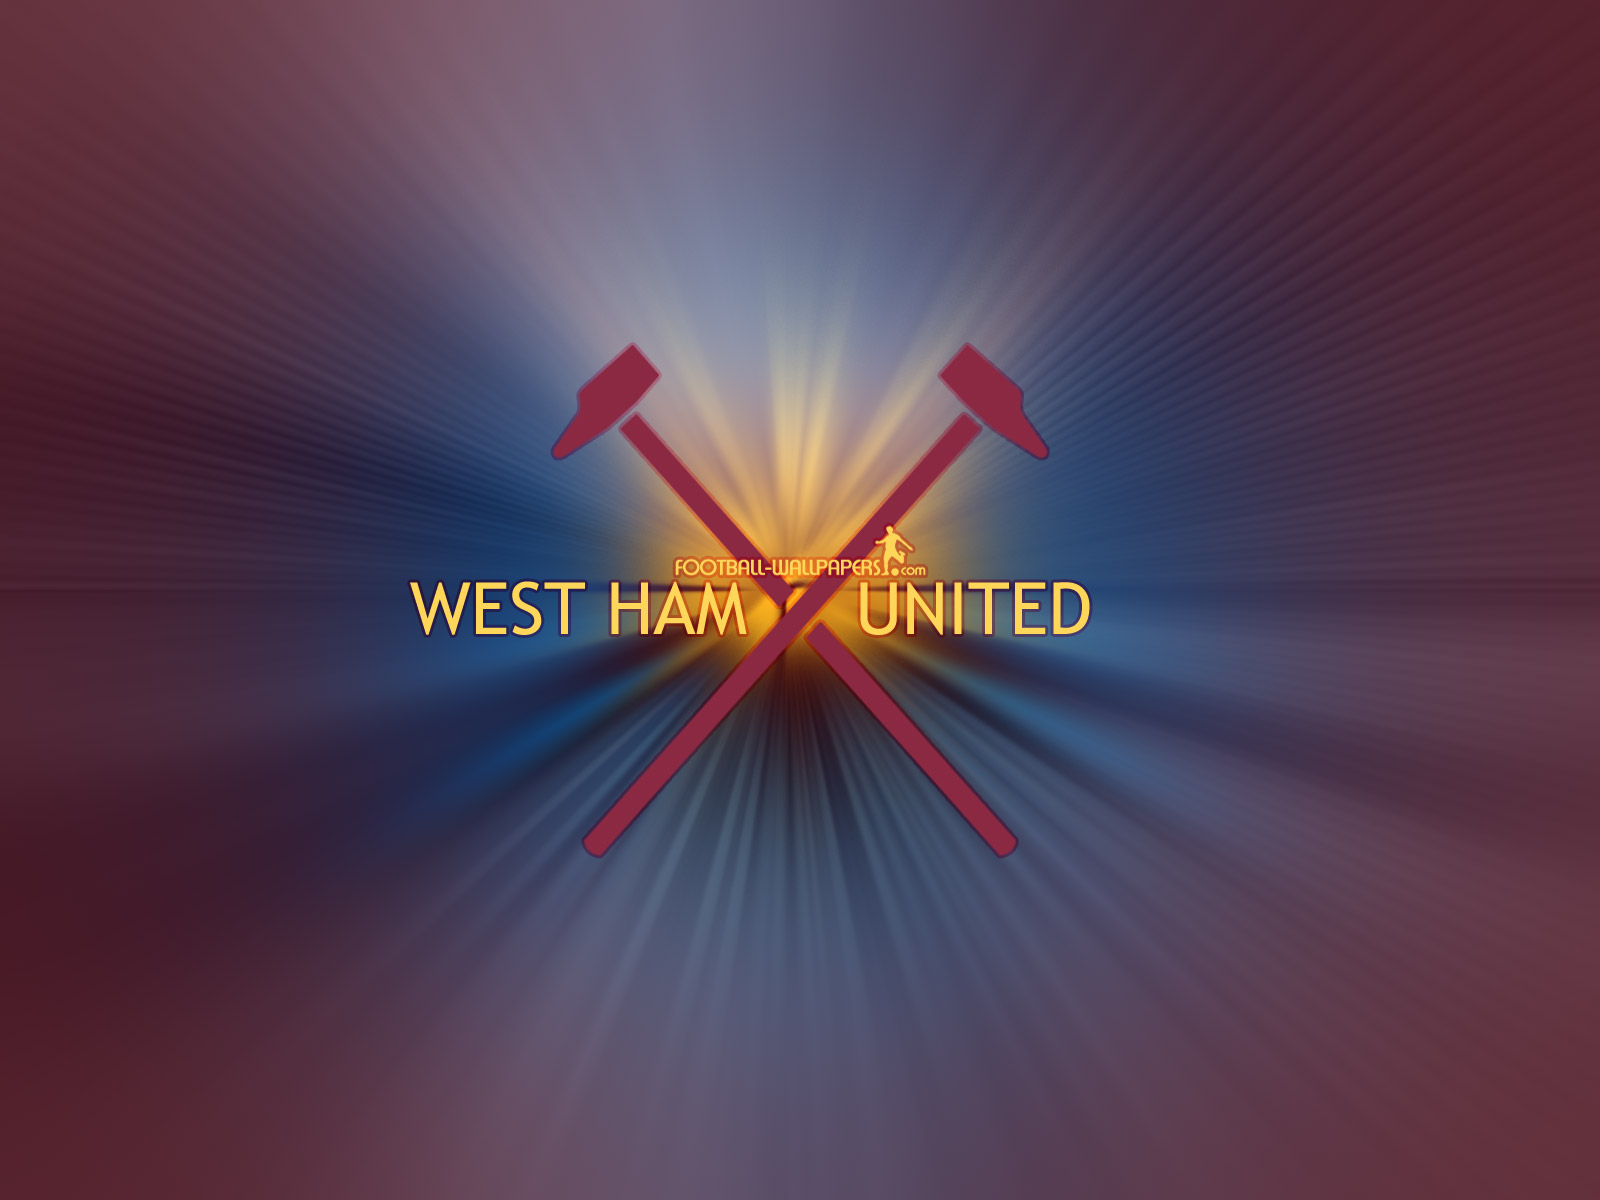 http://4.bp.blogspot.com/_8iVTxaMHZgo/TTXlJUyn7MI/AAAAAAAAHxE/0vE0QRUFcYg/s1600/West_Ham_United_Wallpapers.jpg